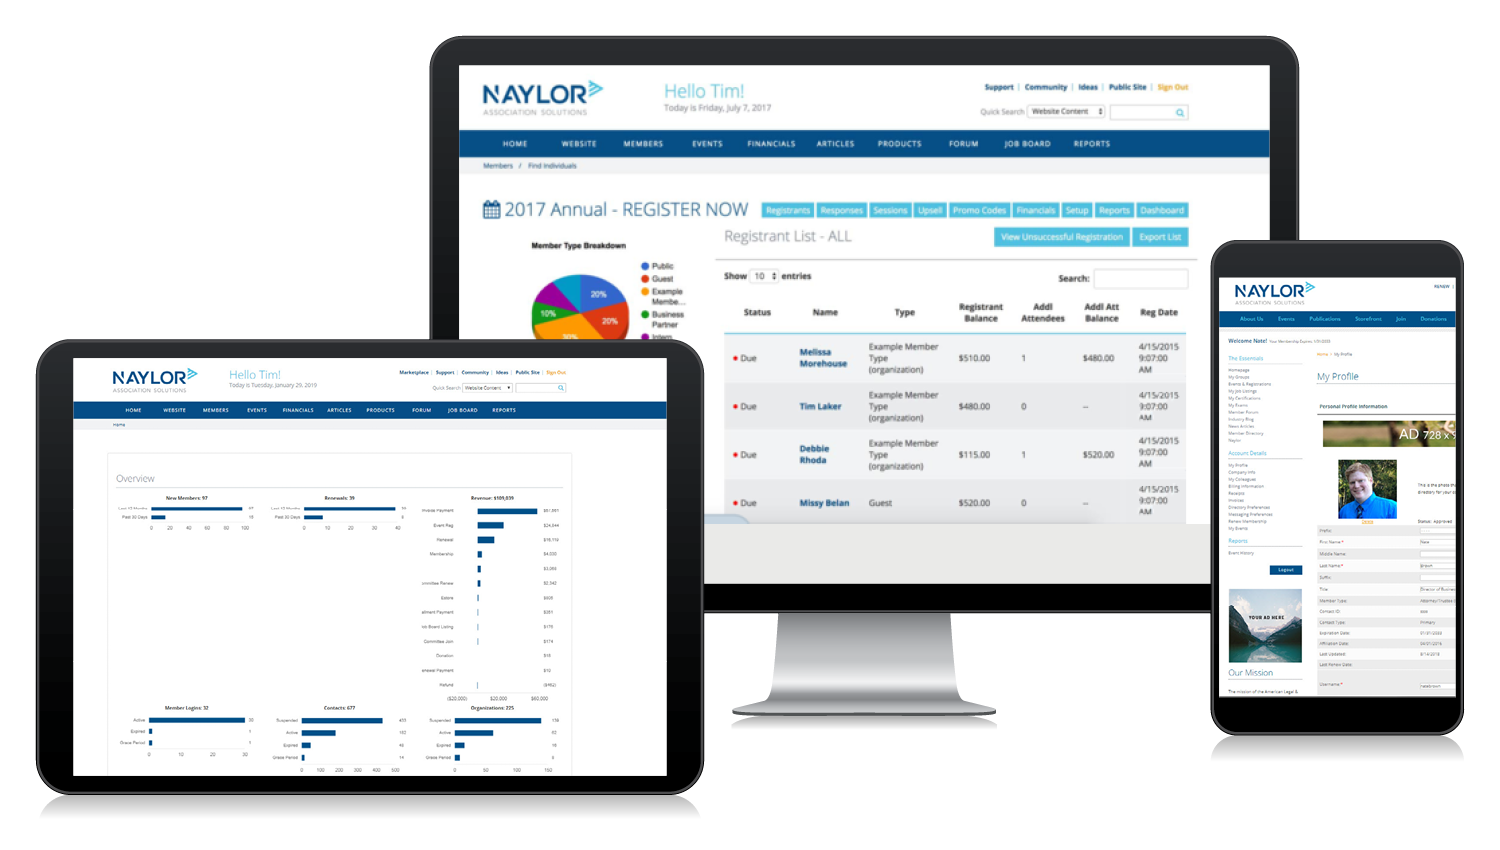 Naylor AMS user interface and dashboard